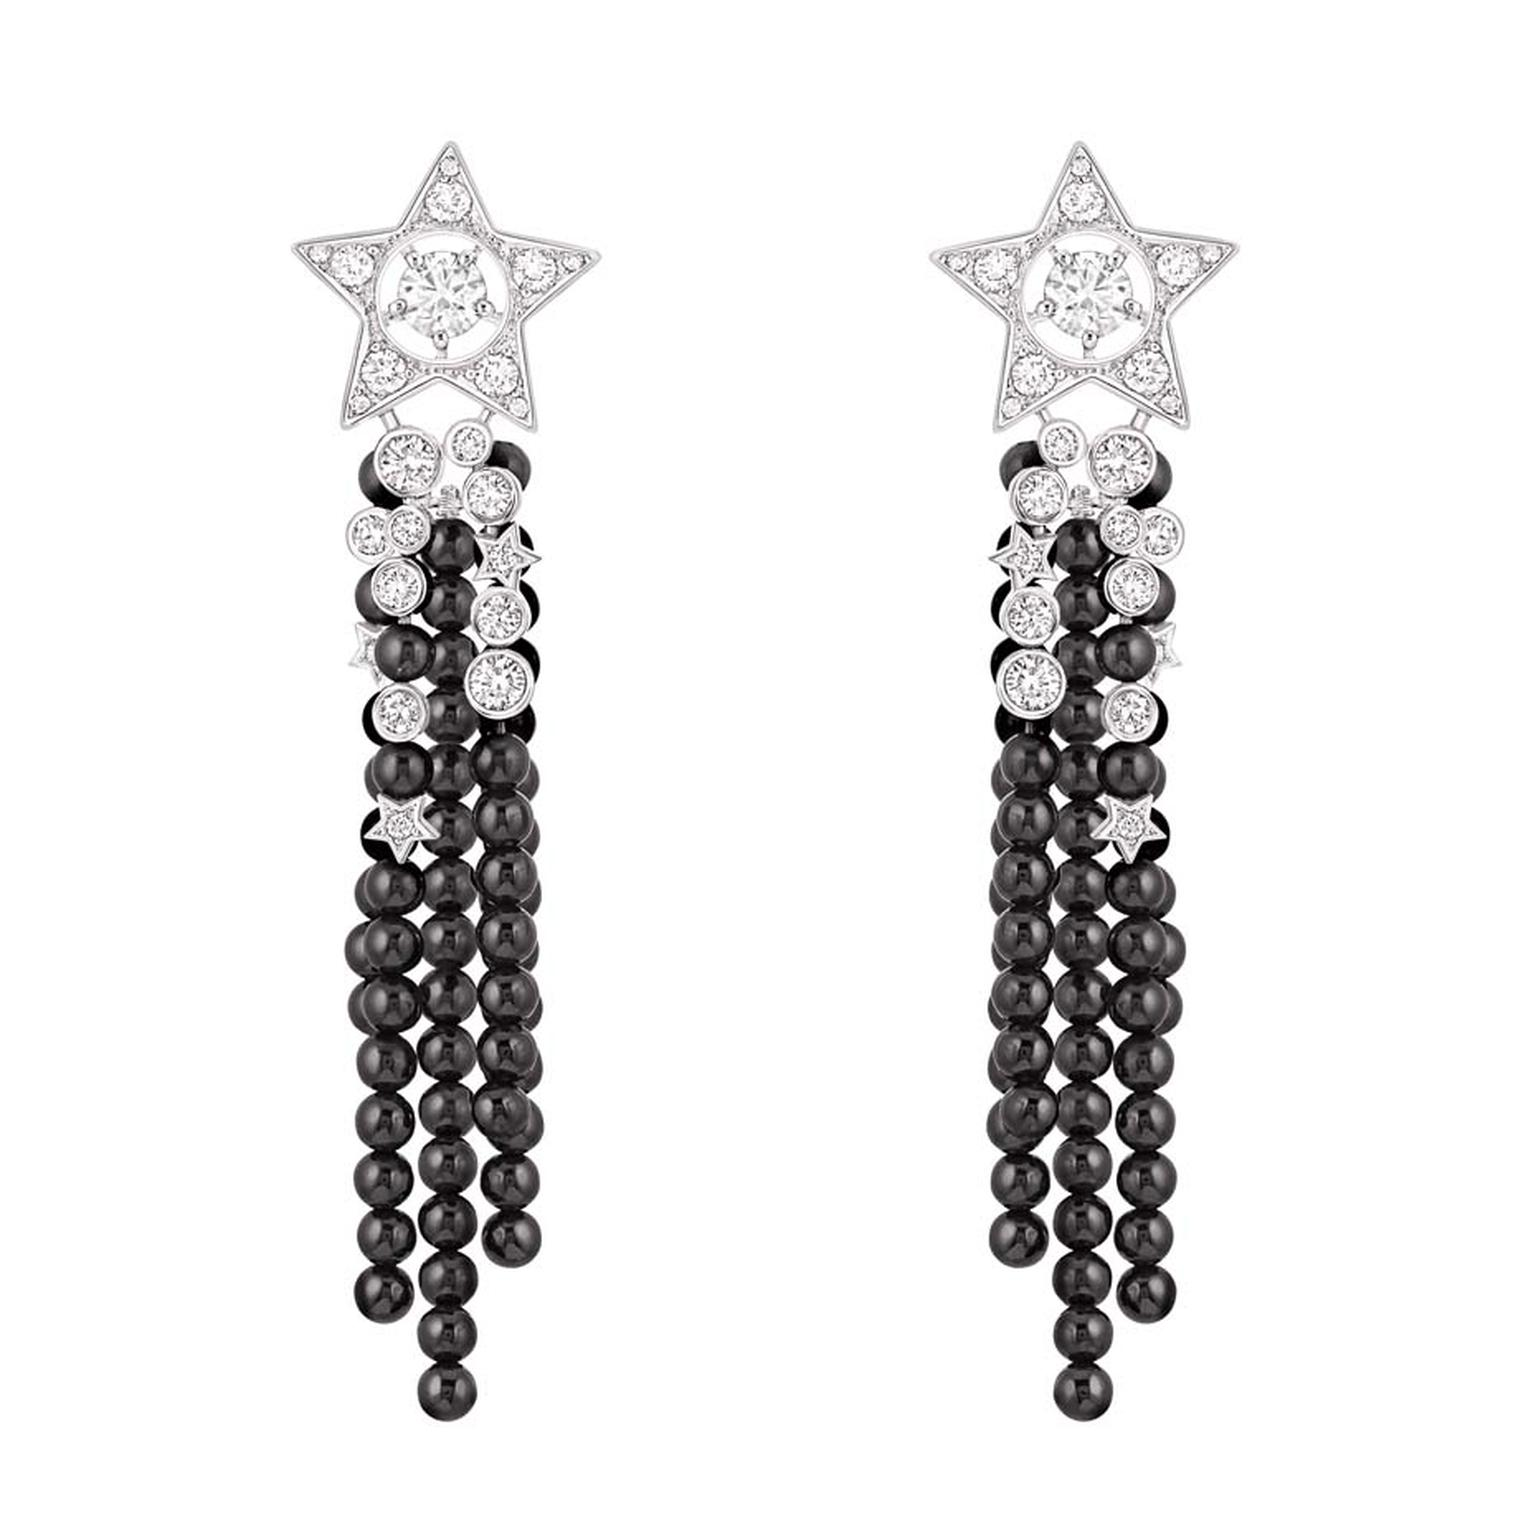 Chanel Comète collection diamond and onyx bead earrings.